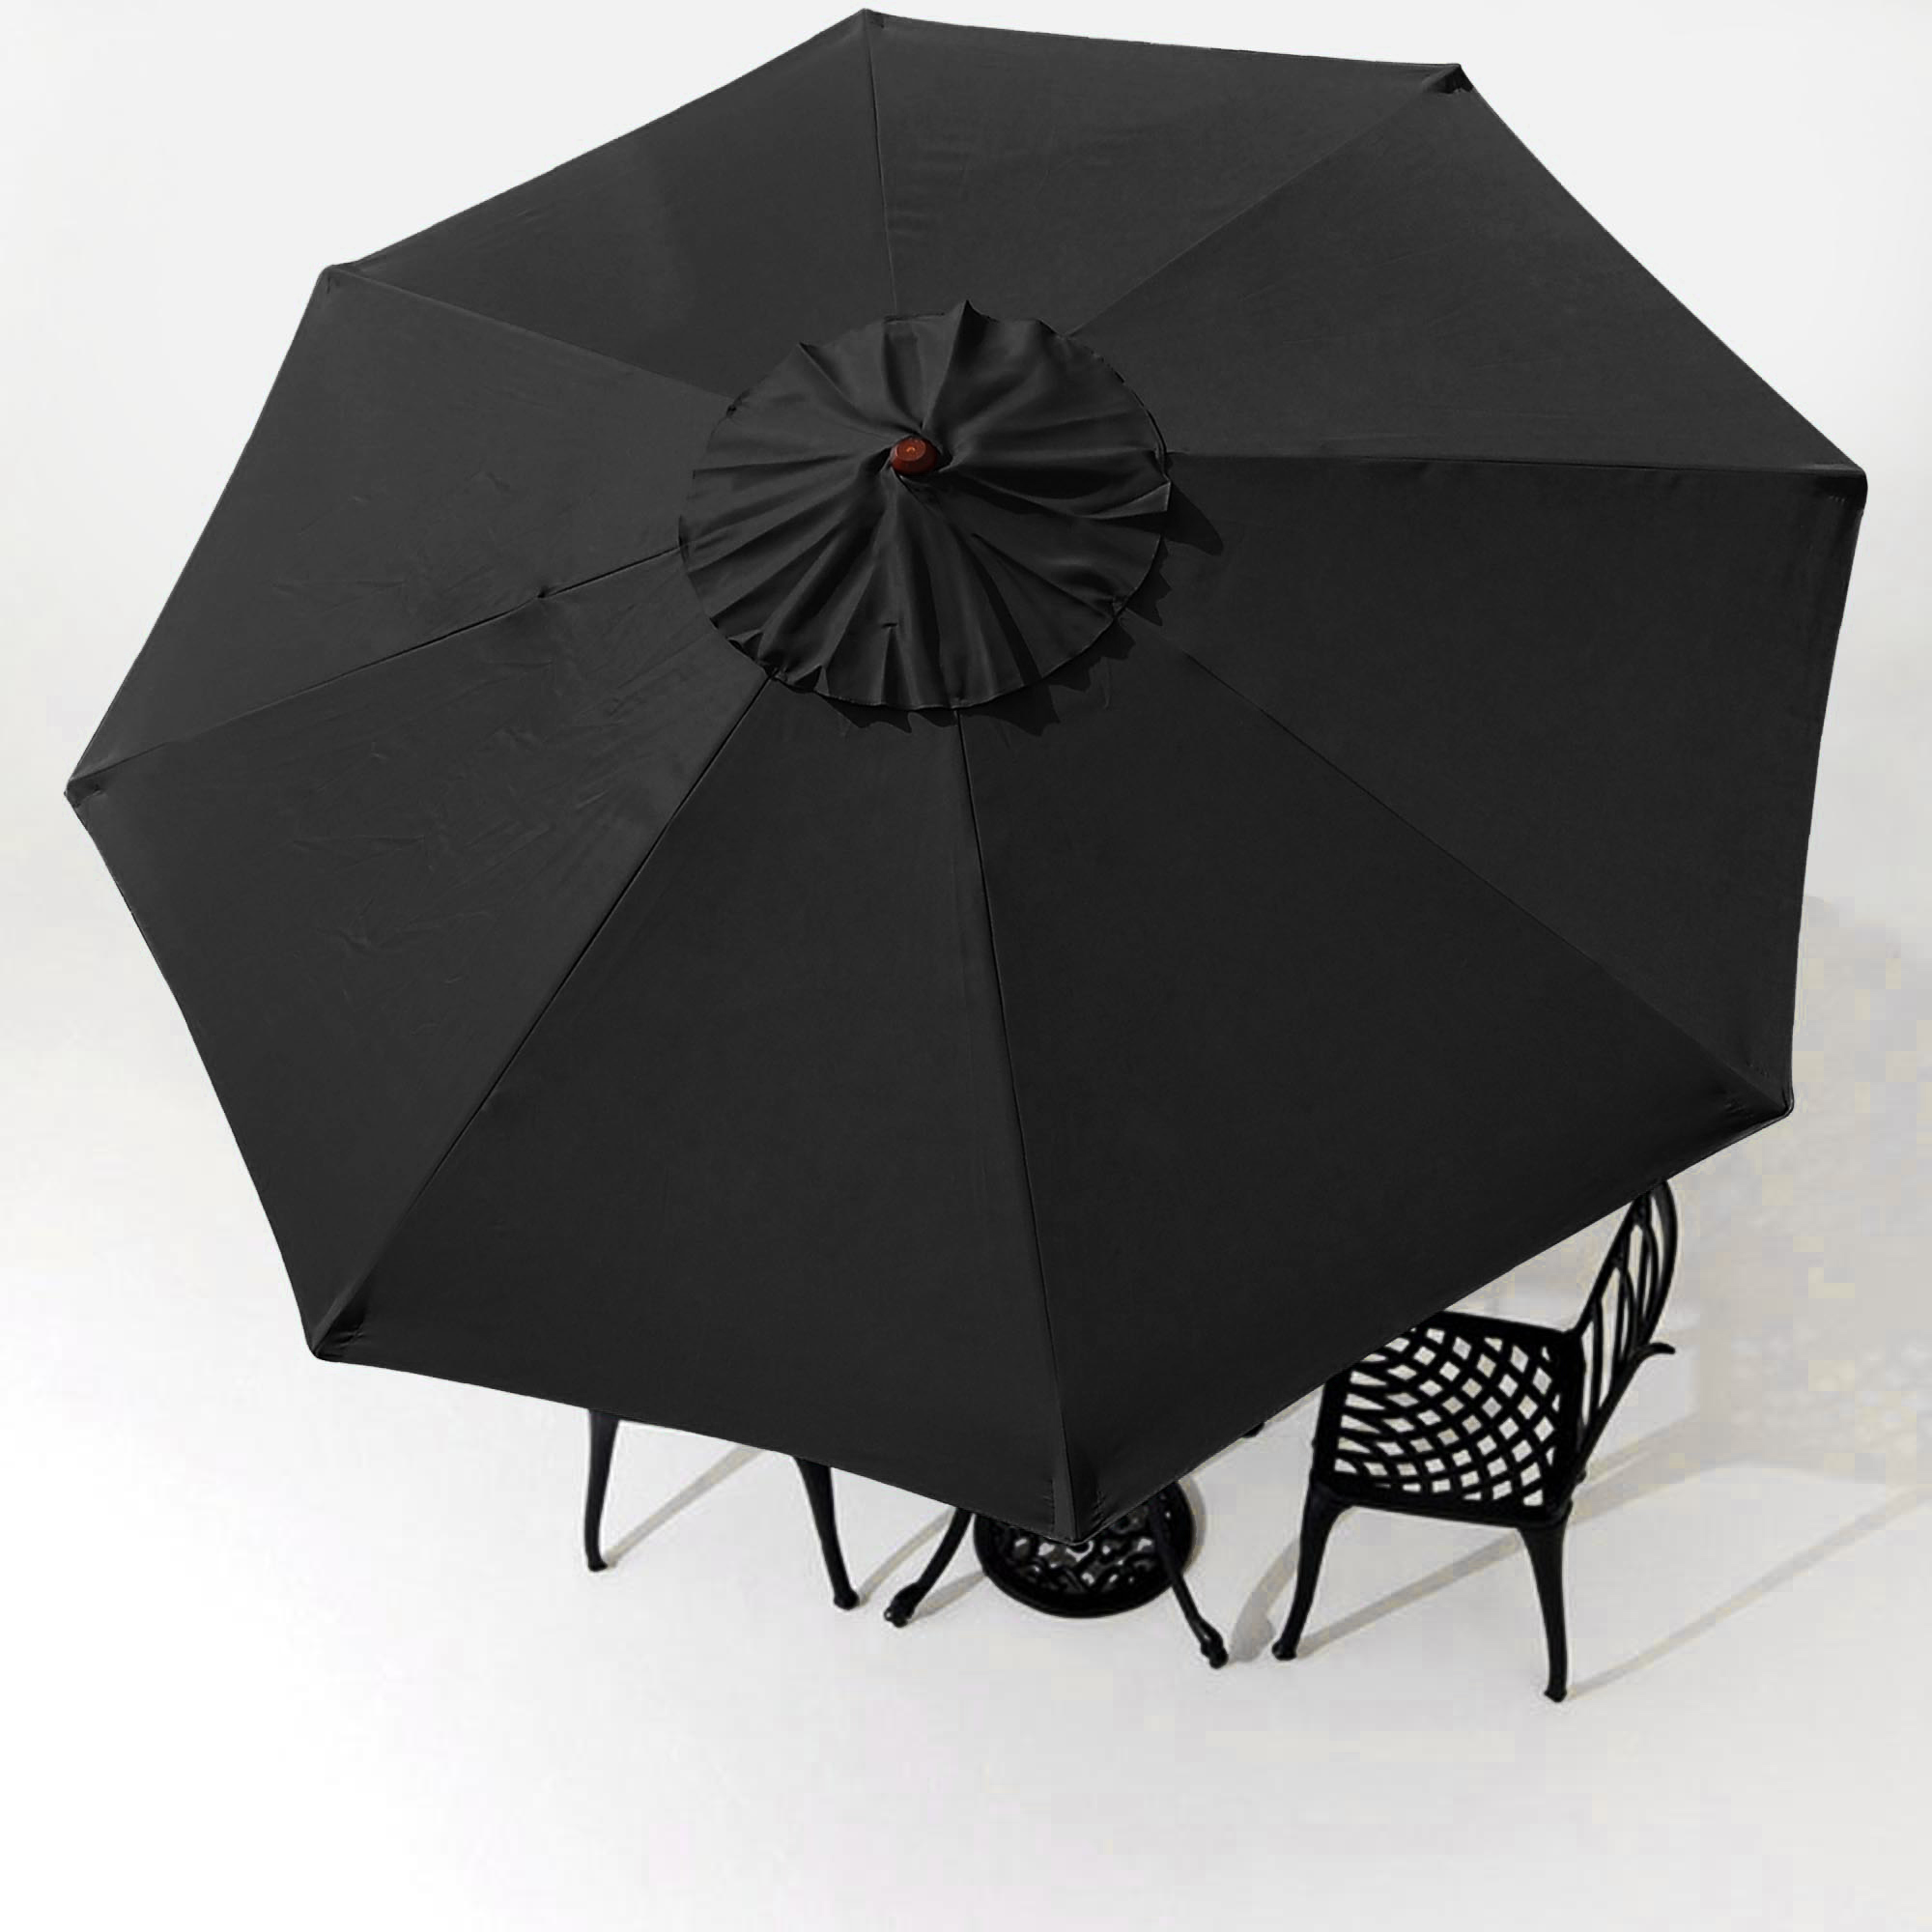 thumbnail 26 - 8'/9'/10'/13' Umbrella Replacement Canopy 8 Rib Outdoor Patio Top Cover Only Opt